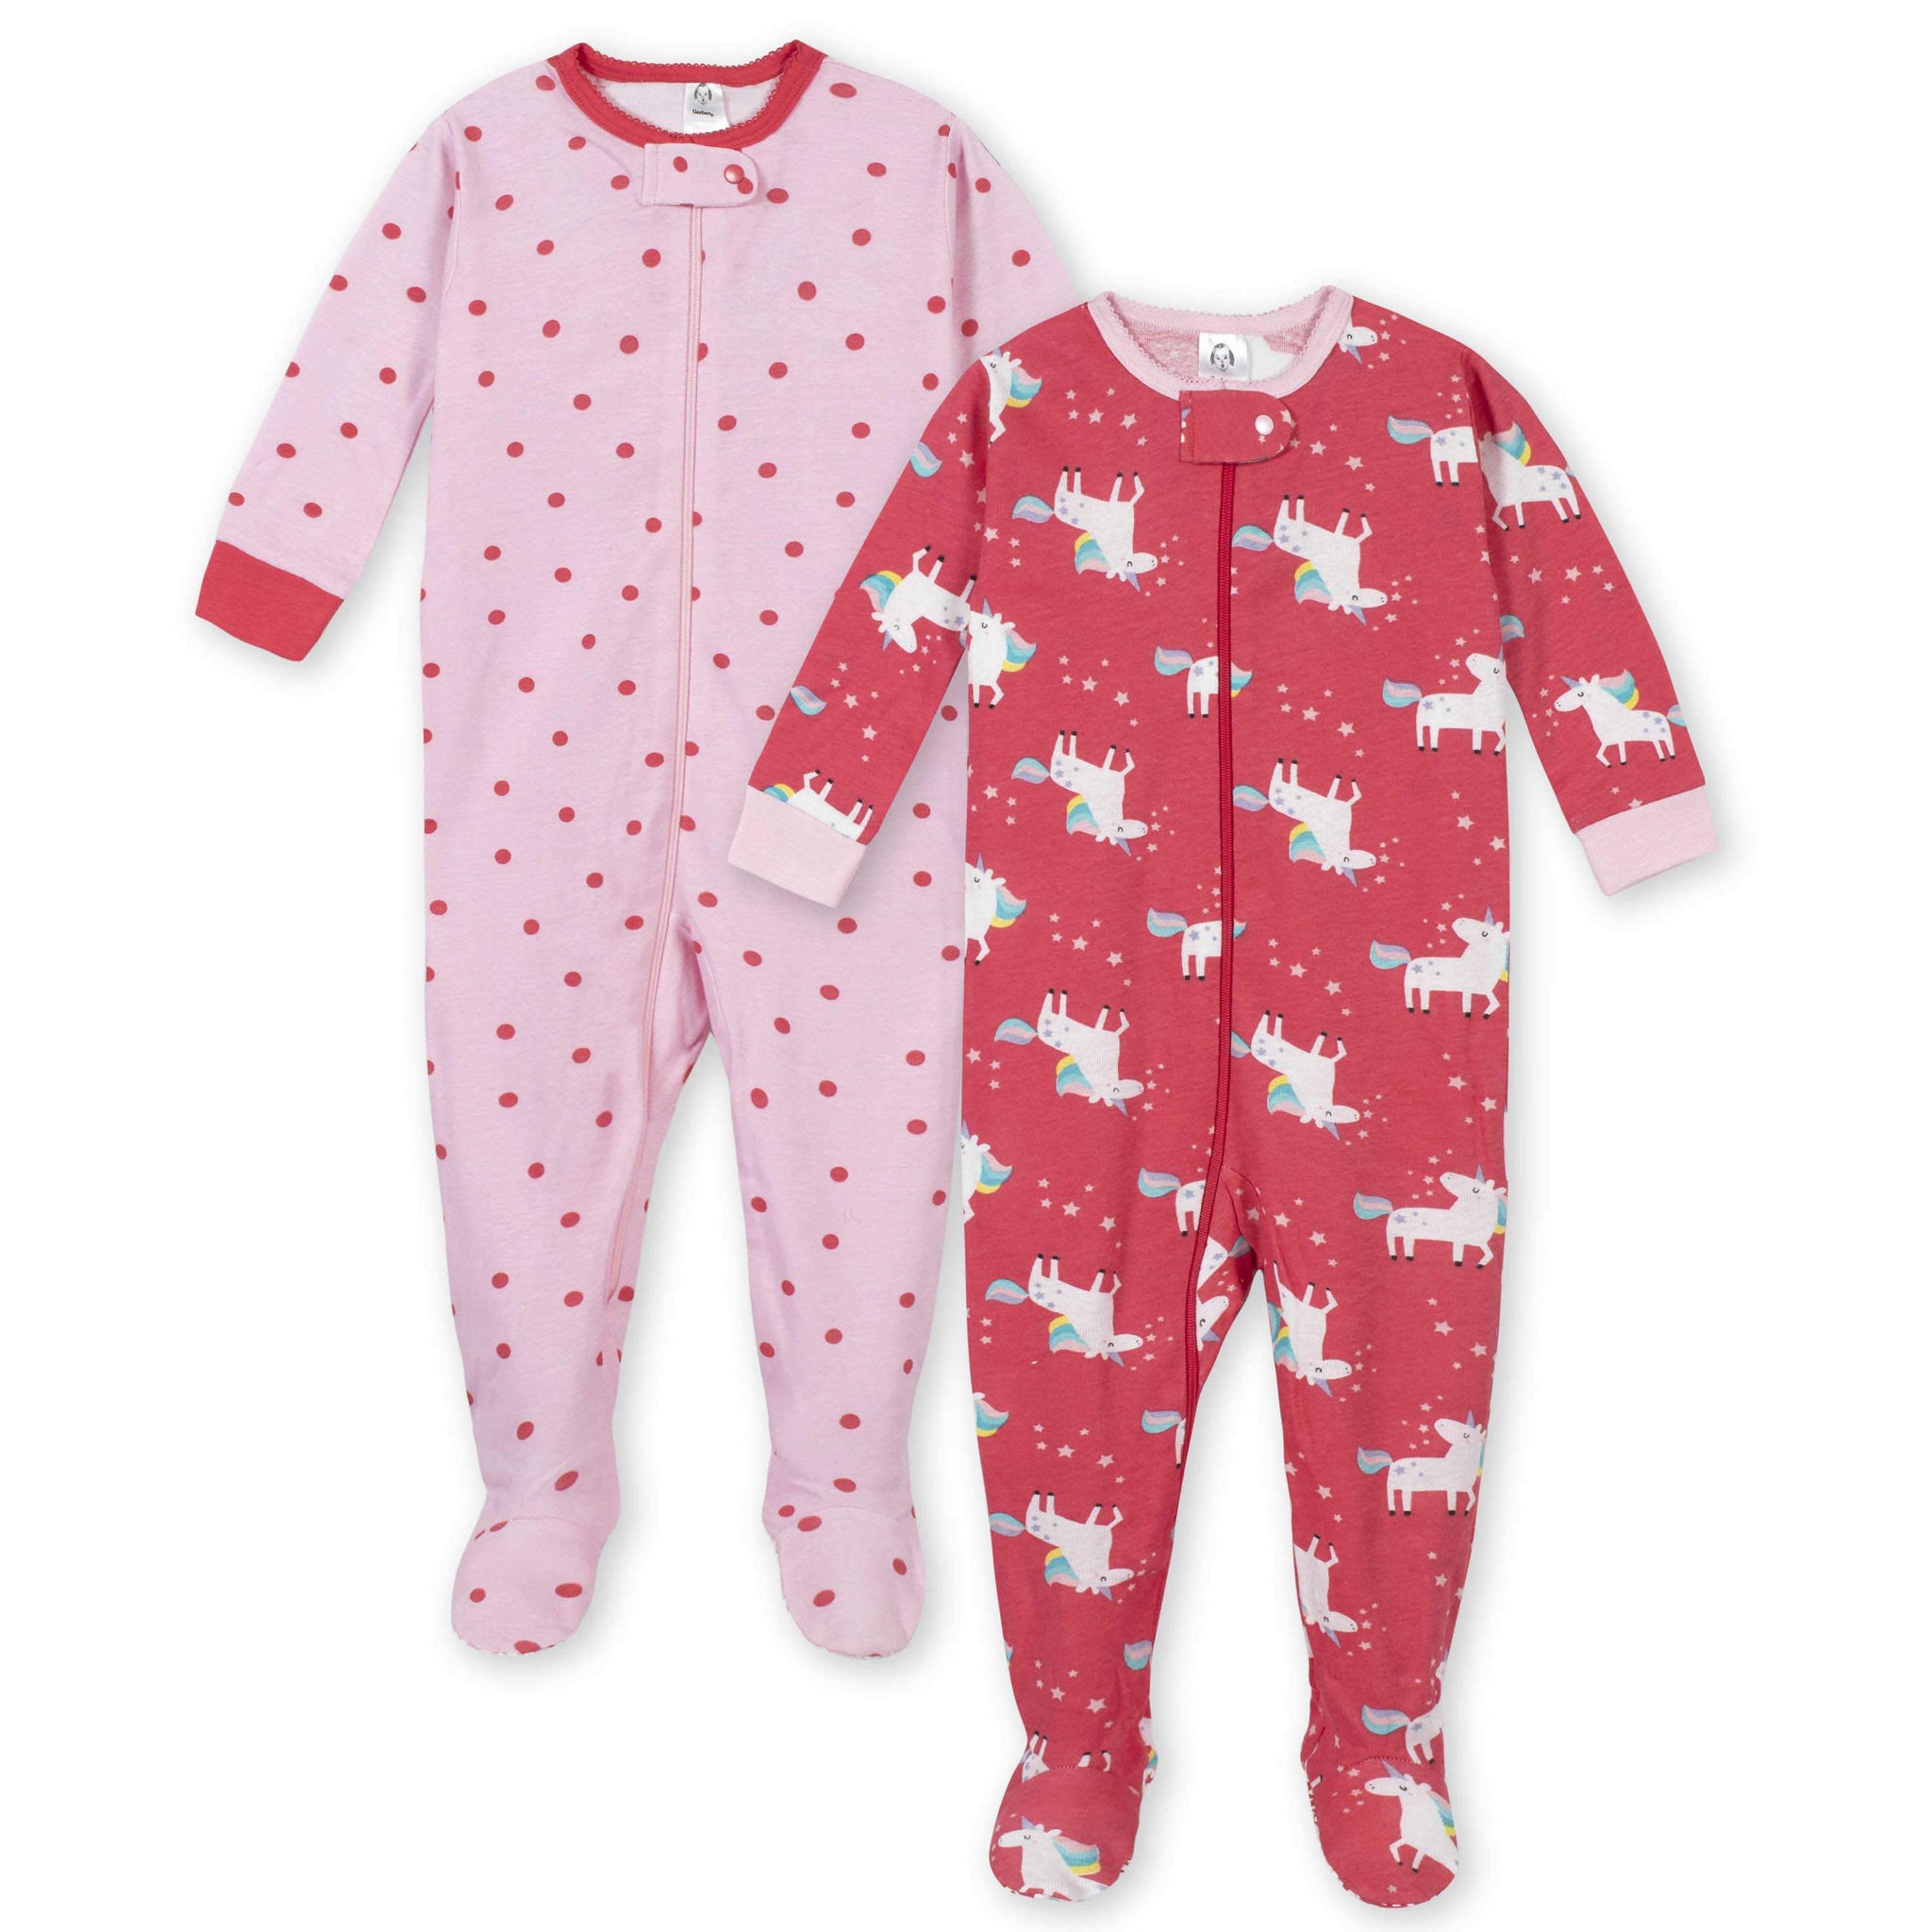 Gerber® 2-Pack Girls Unicorn Footed Pajamas-Gerber Childrenswear